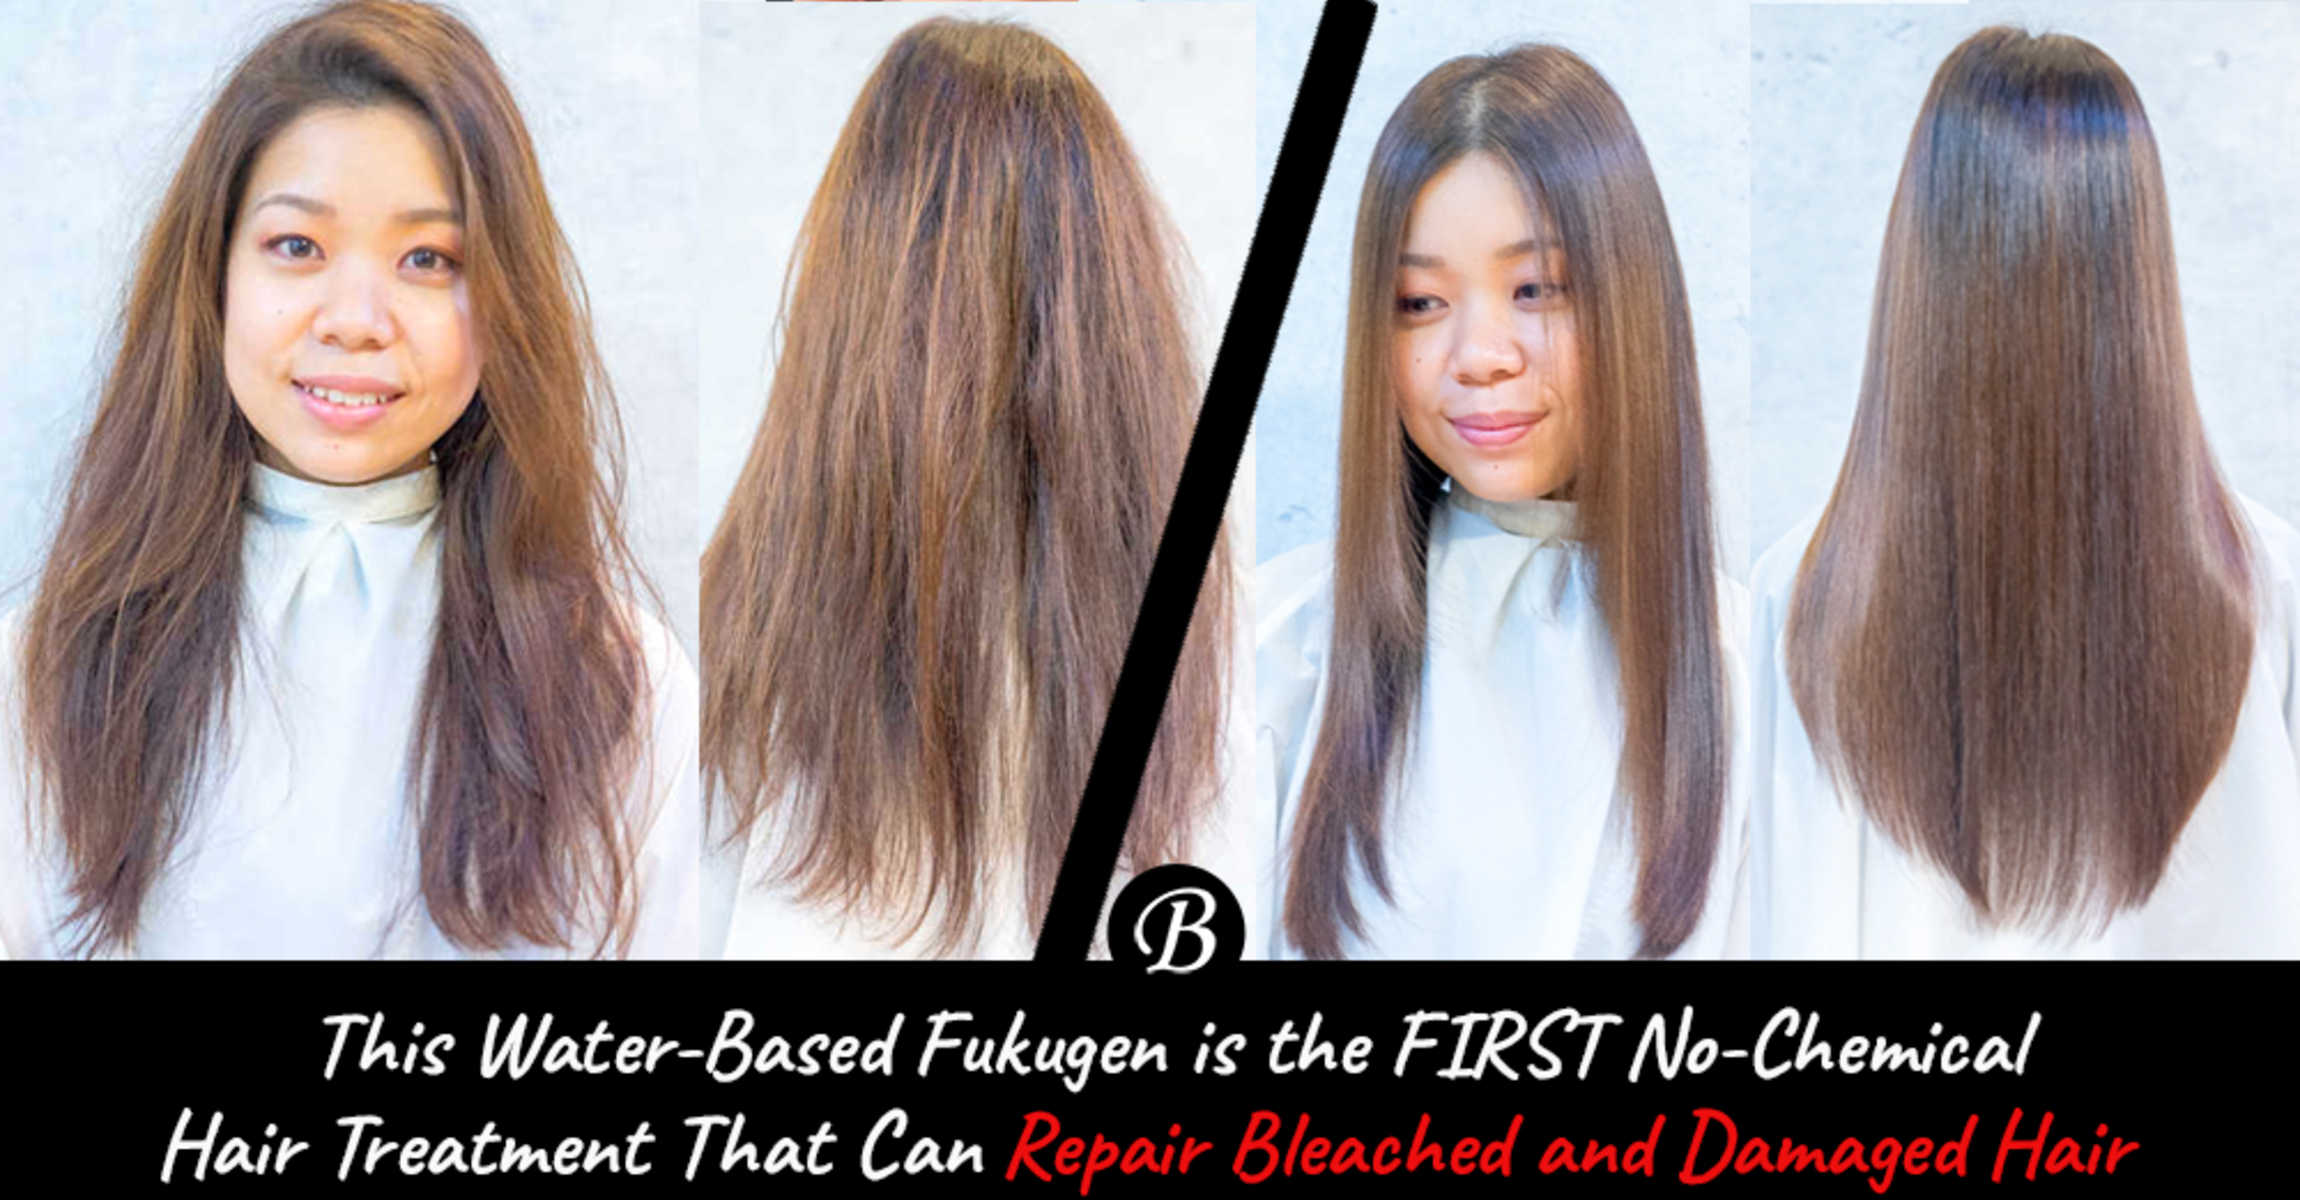 This Water-Based Fukugen is the FIRST No-Chemical Hair Treatment Effective in Repairing Bleached and Damaged Hair